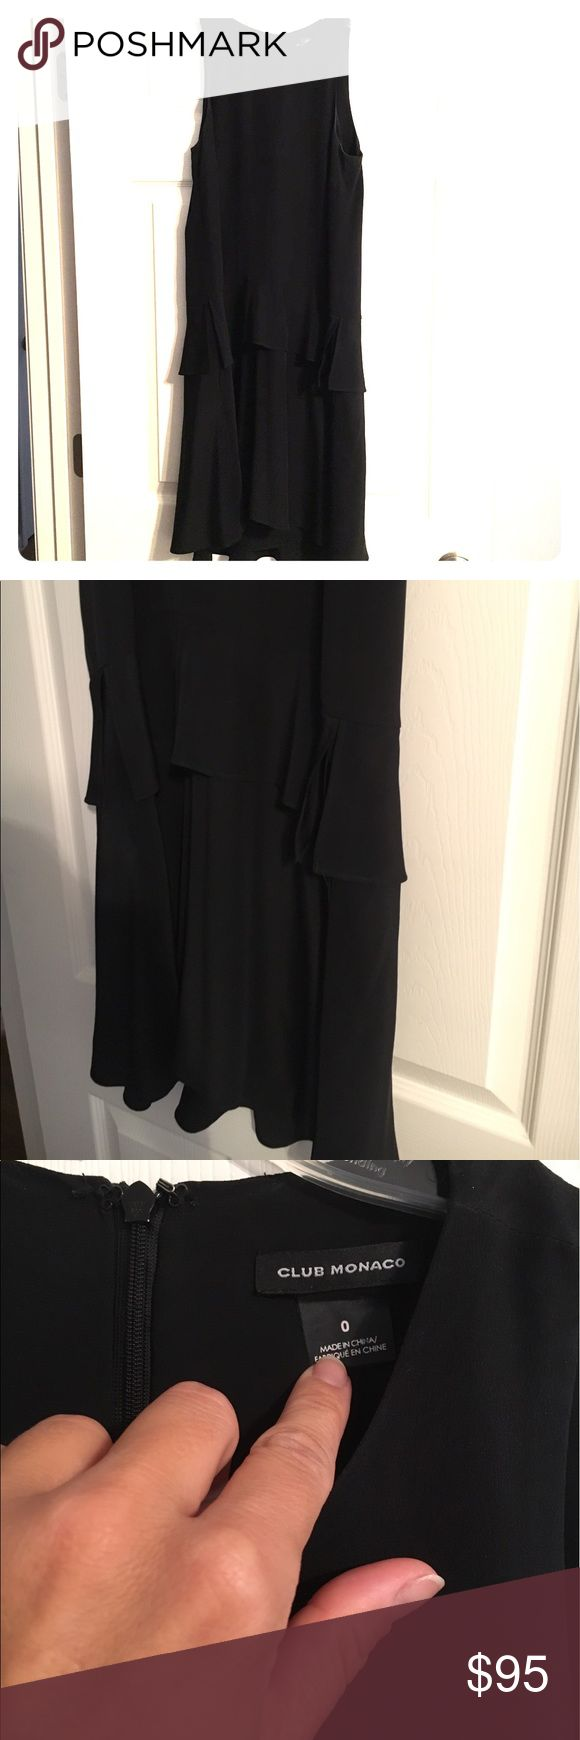 "⚡️SALE⚡️Club Monaco ""Nora"" Dress This dress is nearly perfect in every way. Black silk with a tiered skirt with pockets. It can easily be dressed up or down. The fit is very forgiving and really flattering. I'm just ready for something new. This one has served me well. *currently being dry cleaned. Ready to ship 7/11/17* Club Monaco Dresses Mini"